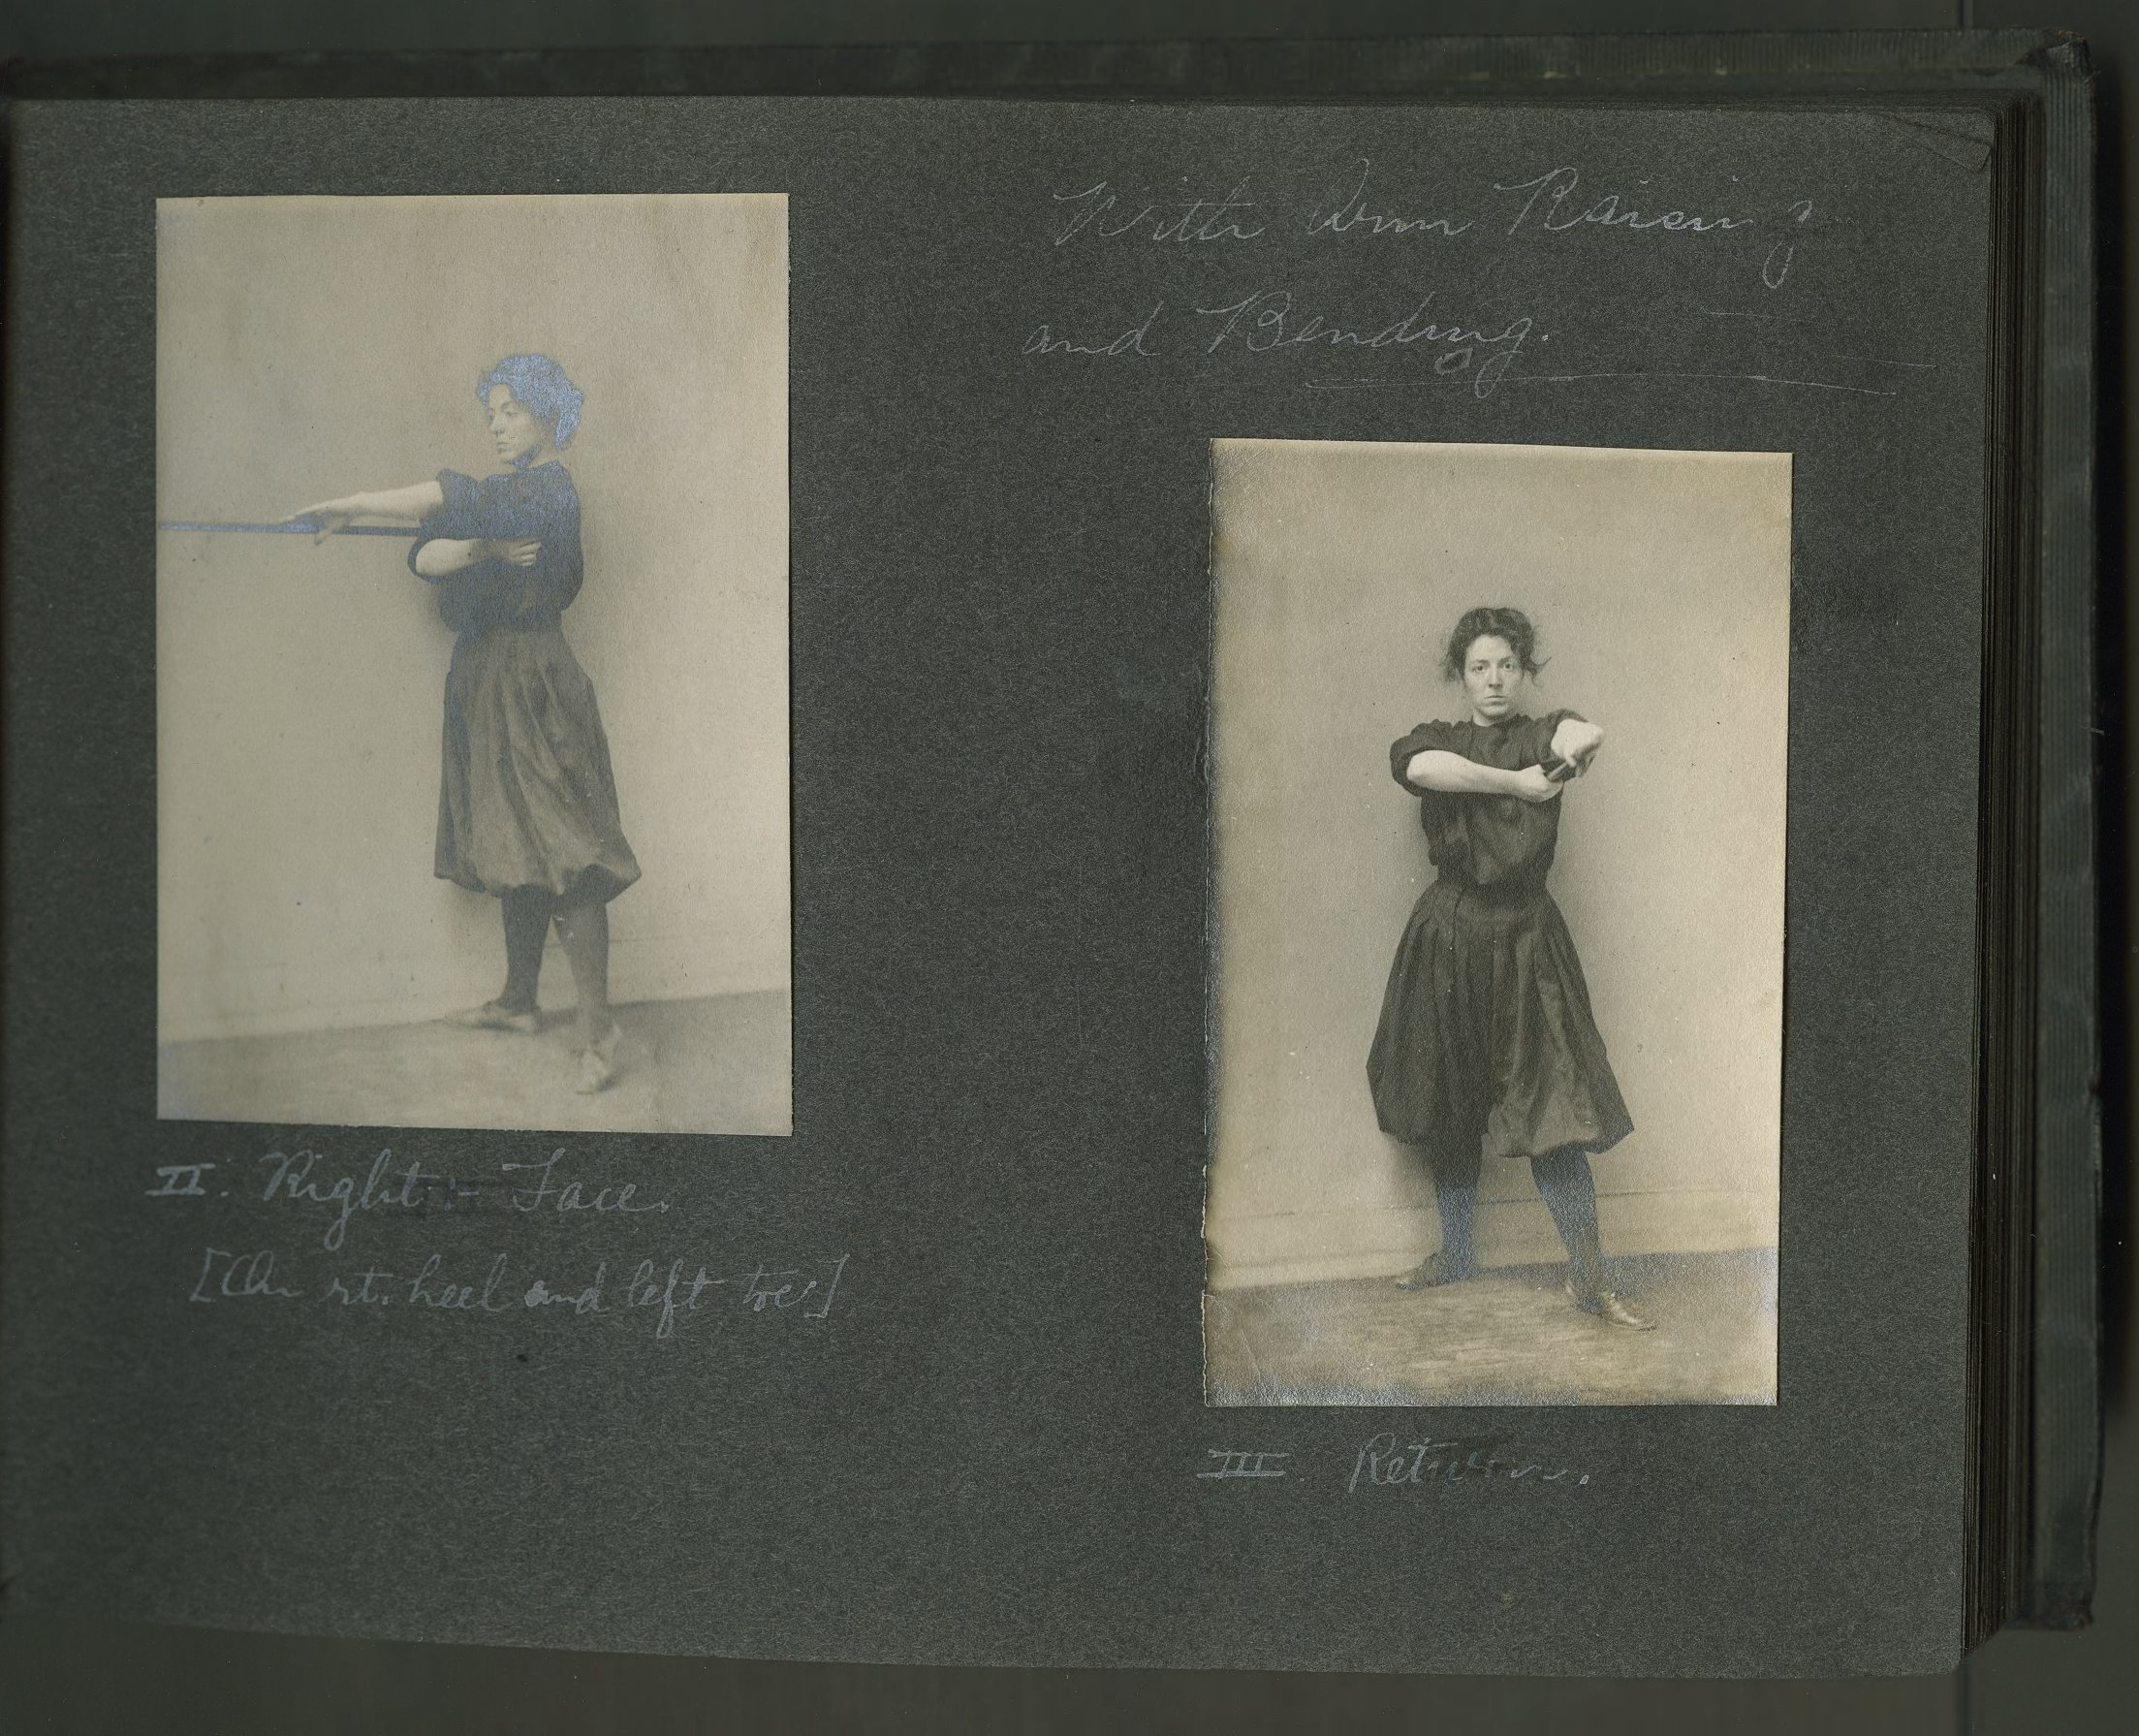 Two photos of a woman holding a wand in front of her.